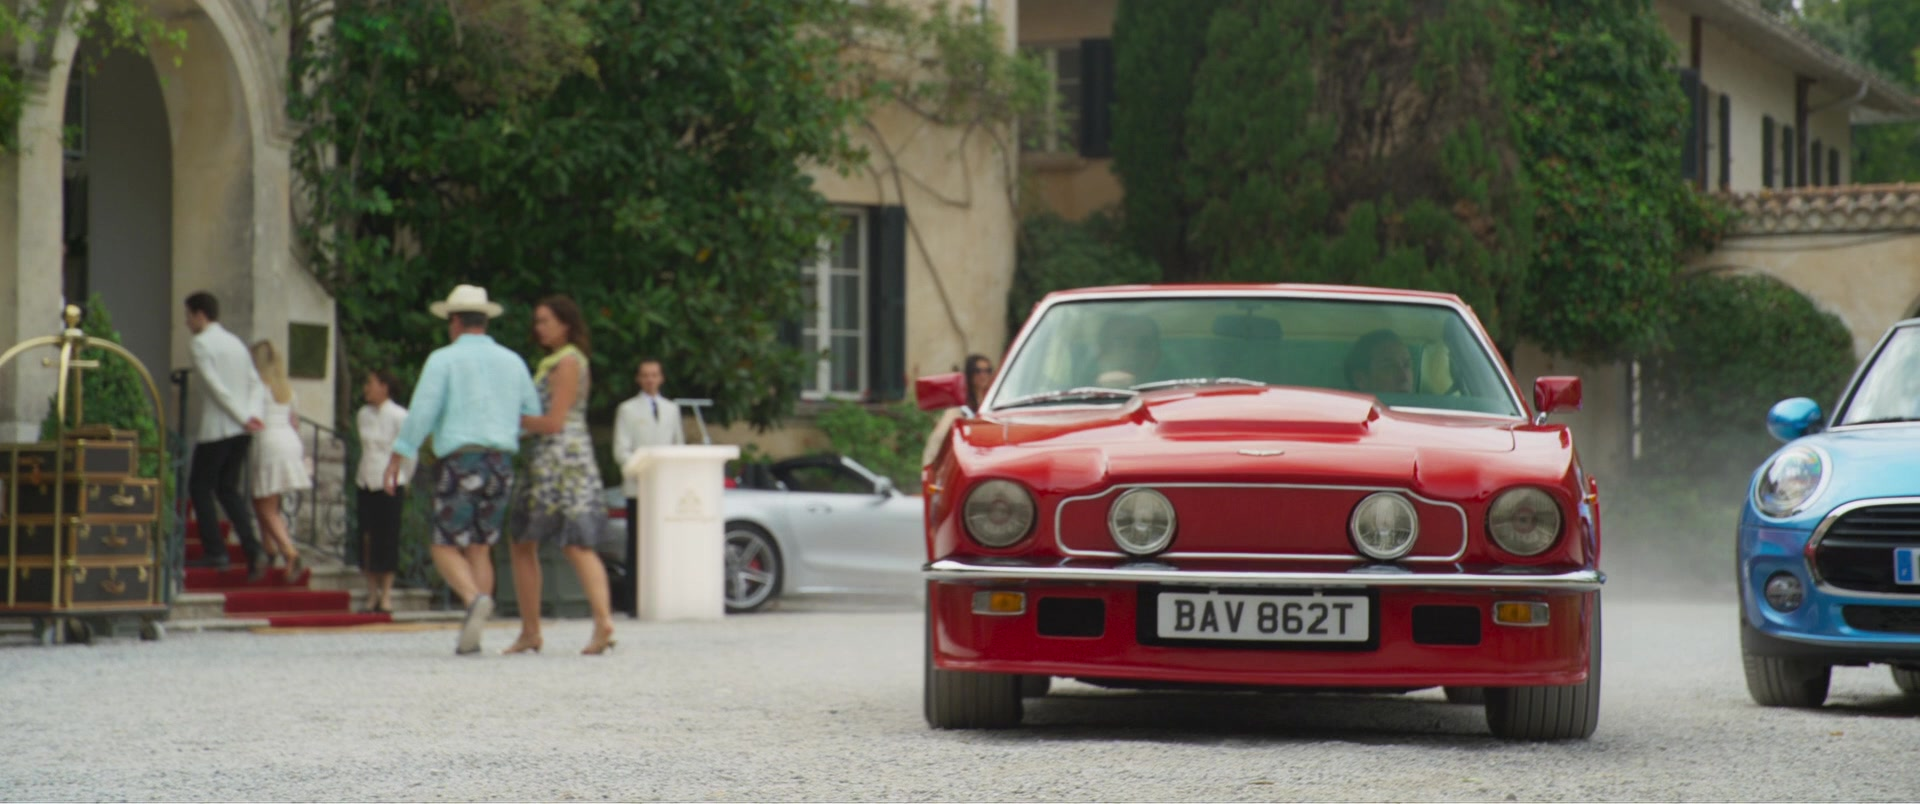 1979 Aston Martin V8 Vantage Mki Sports Car In Johnny